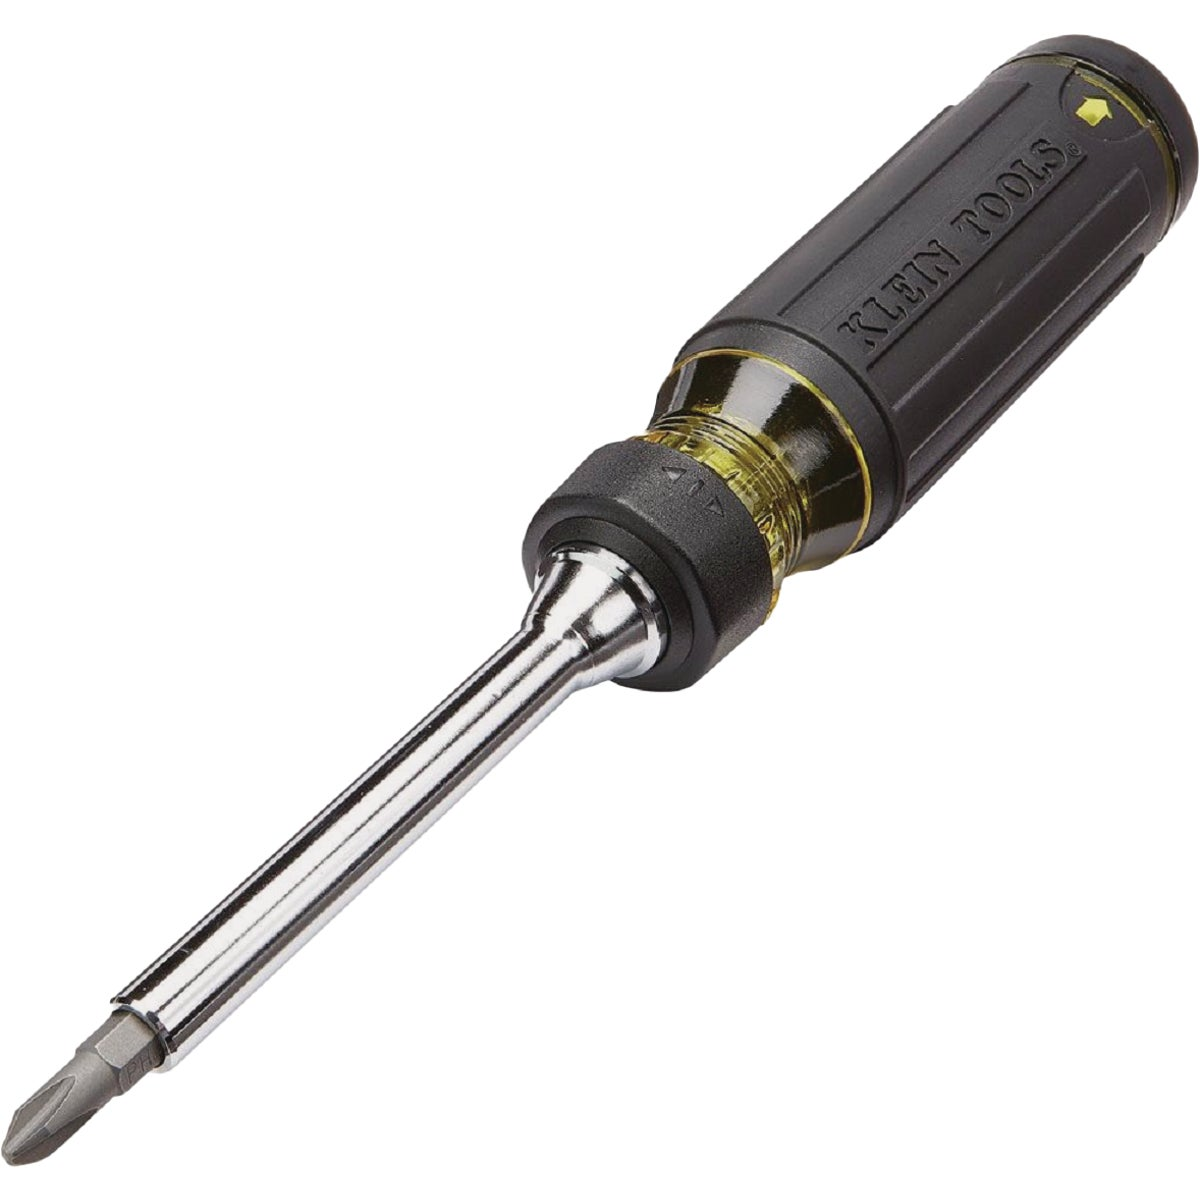 MLTIBT RATCH SCREWDRIVER - 32558 by Klein Tools Inc